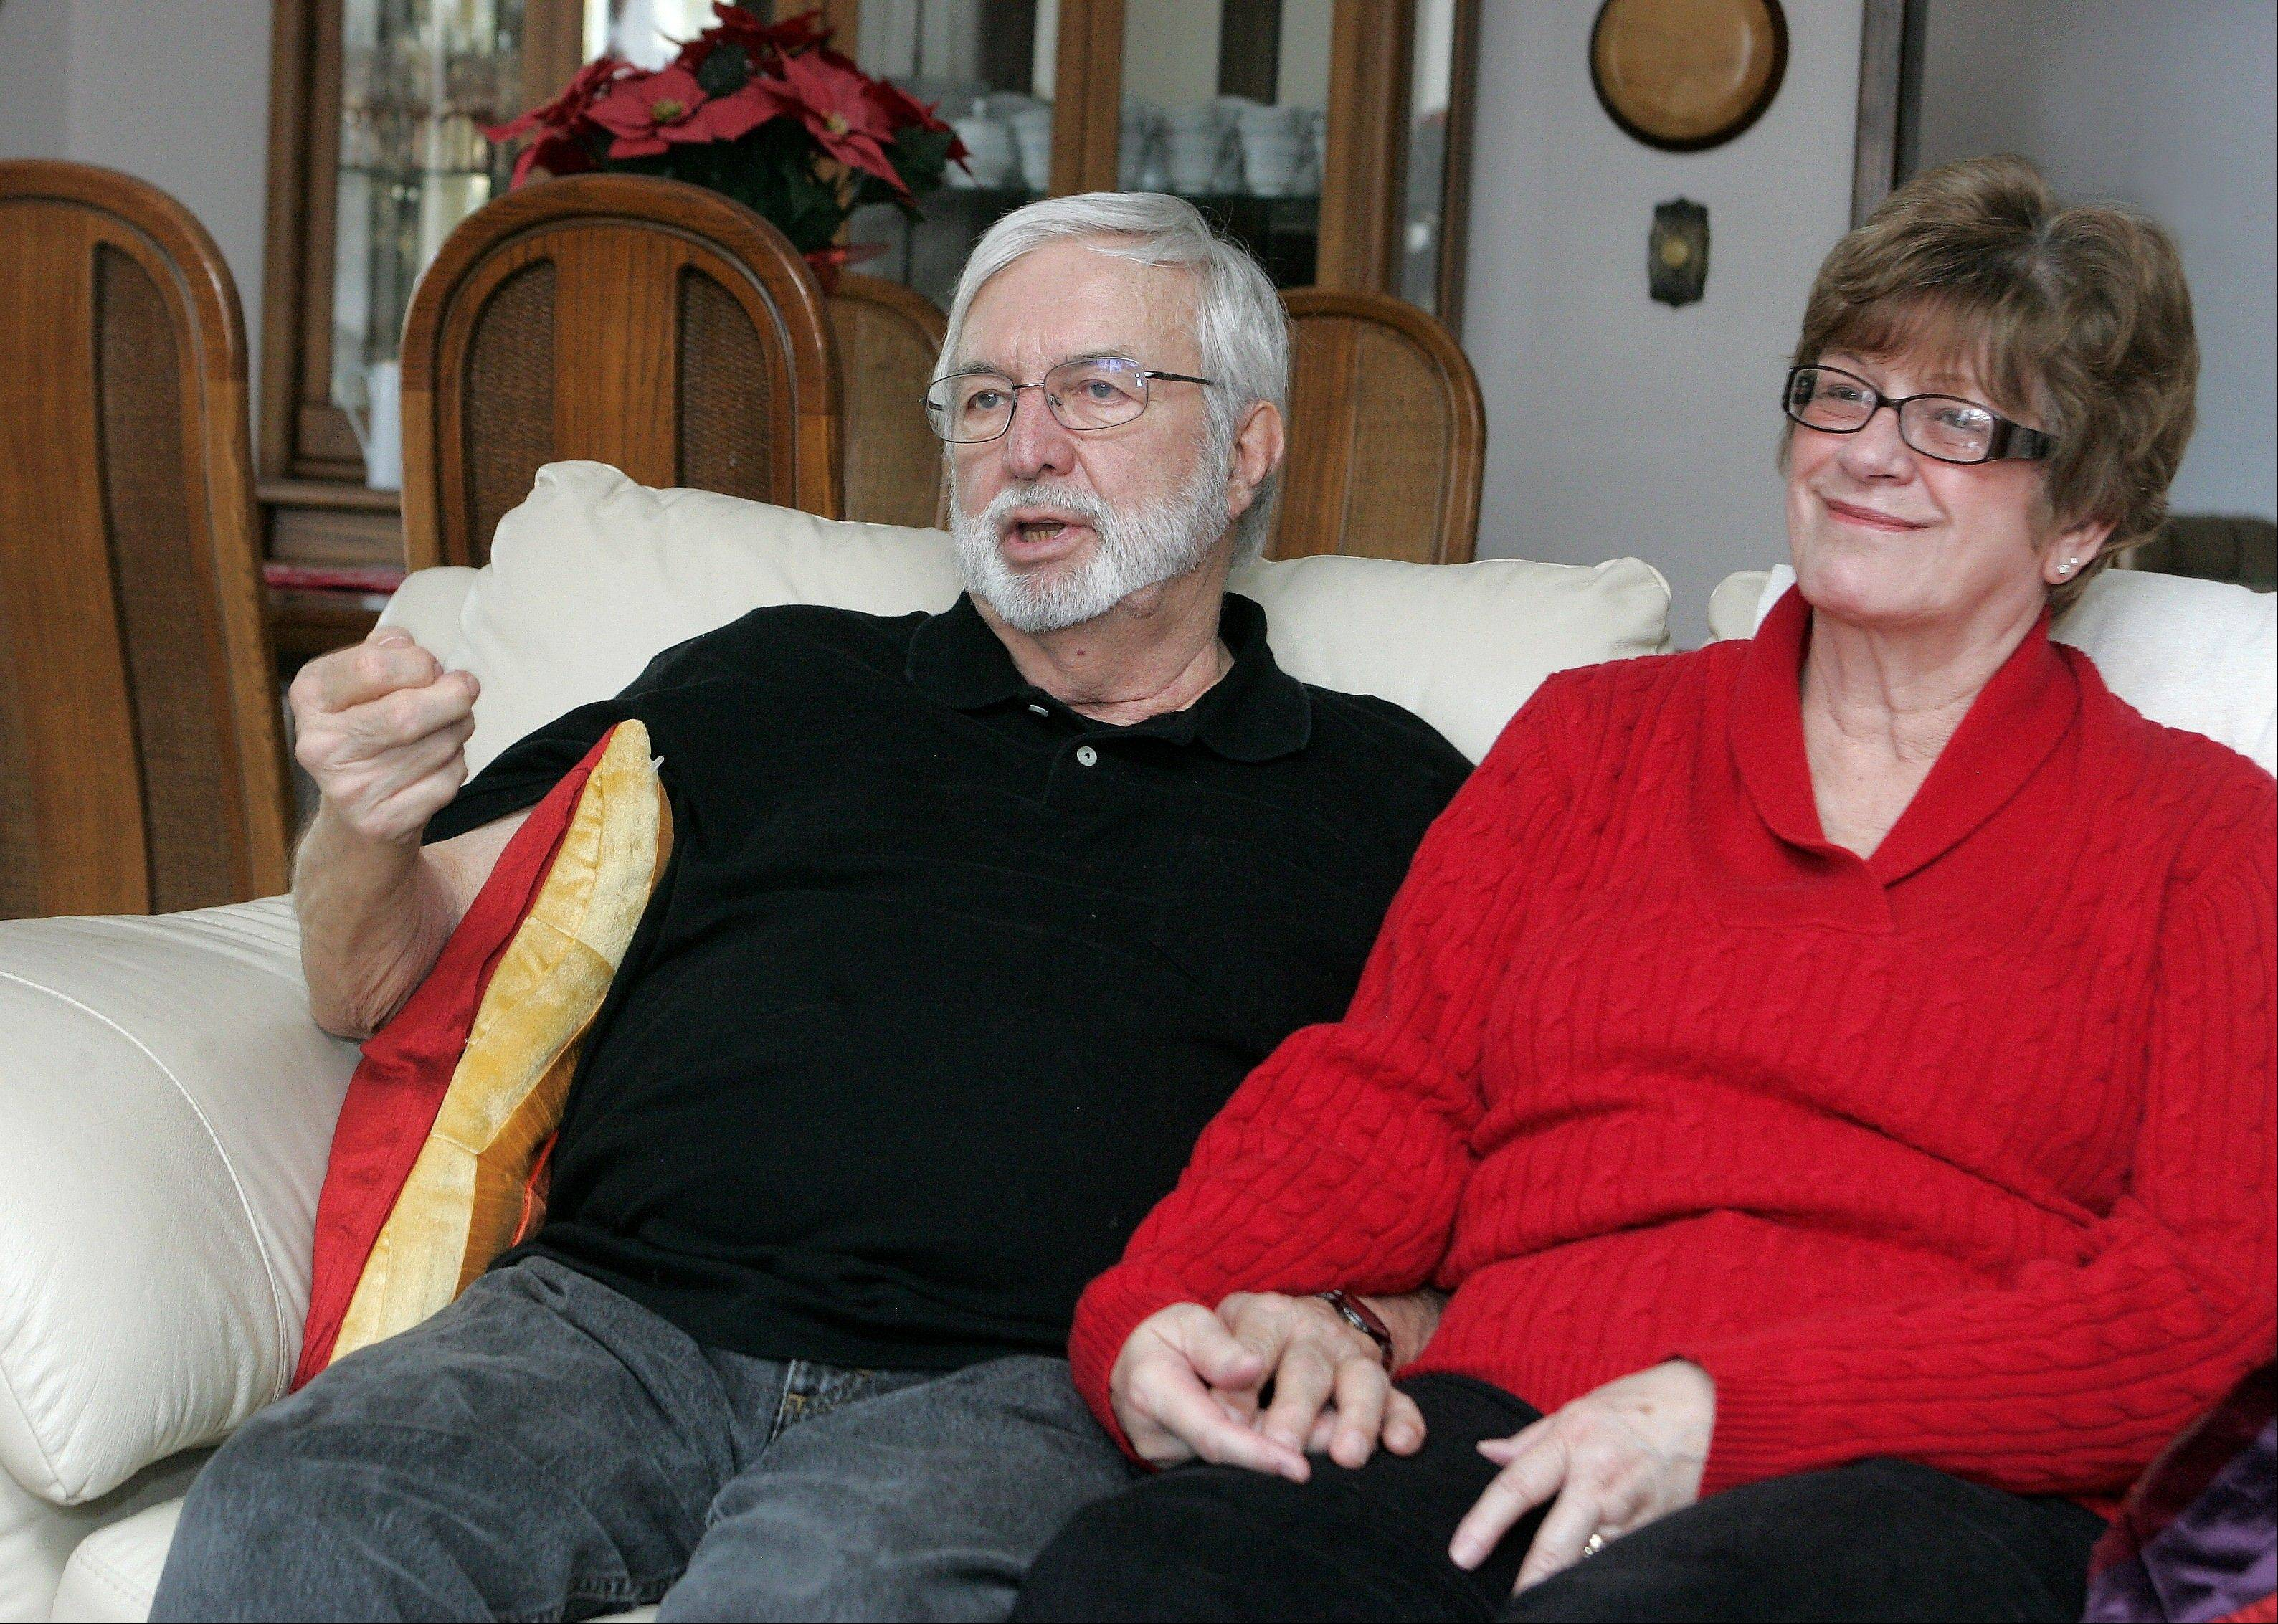 Gary Robb and his wife, Fran, sit in their Rockford home and talk about the heart transplant Gary received in April 2009.